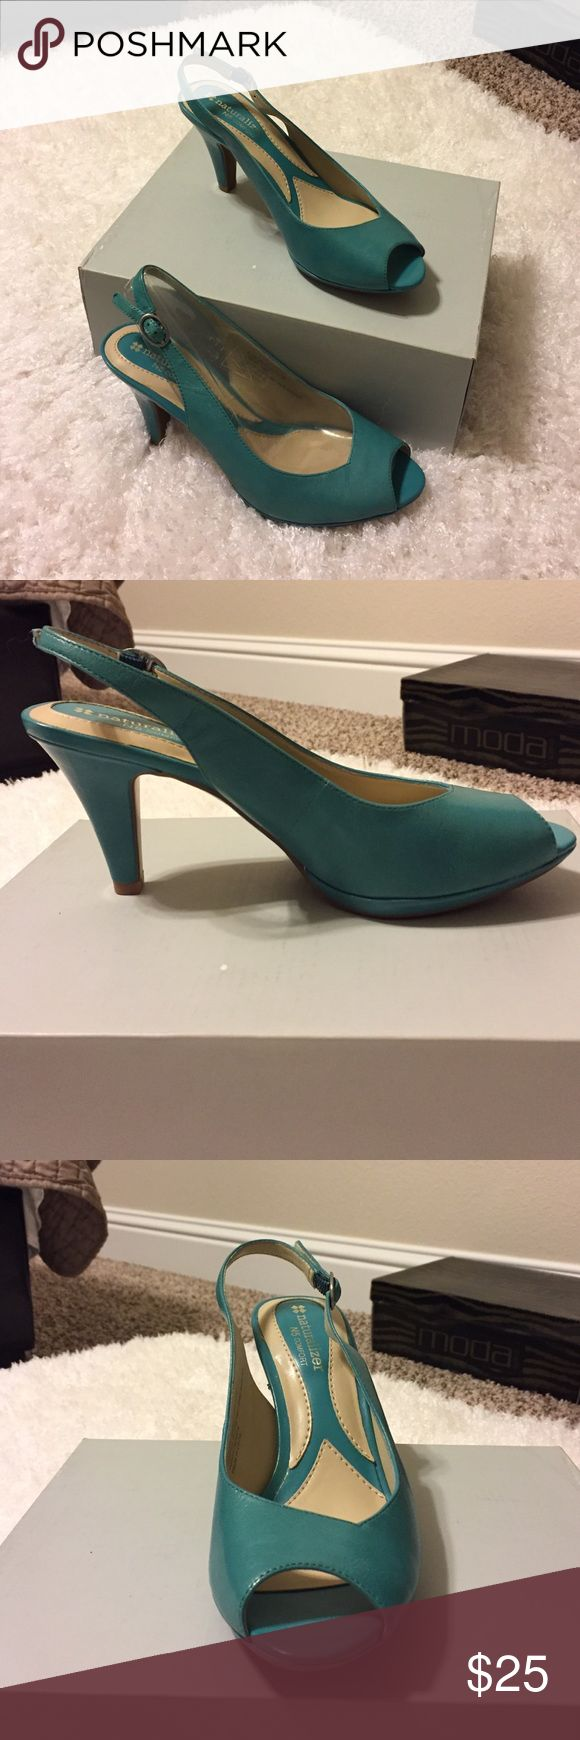 Naturalizer N5 Comfort Teal Sandals New without tags. Naturalizer Sandals. Leather upper. Very comfortable. Size 6.5. Naturalizer Shoes Heels